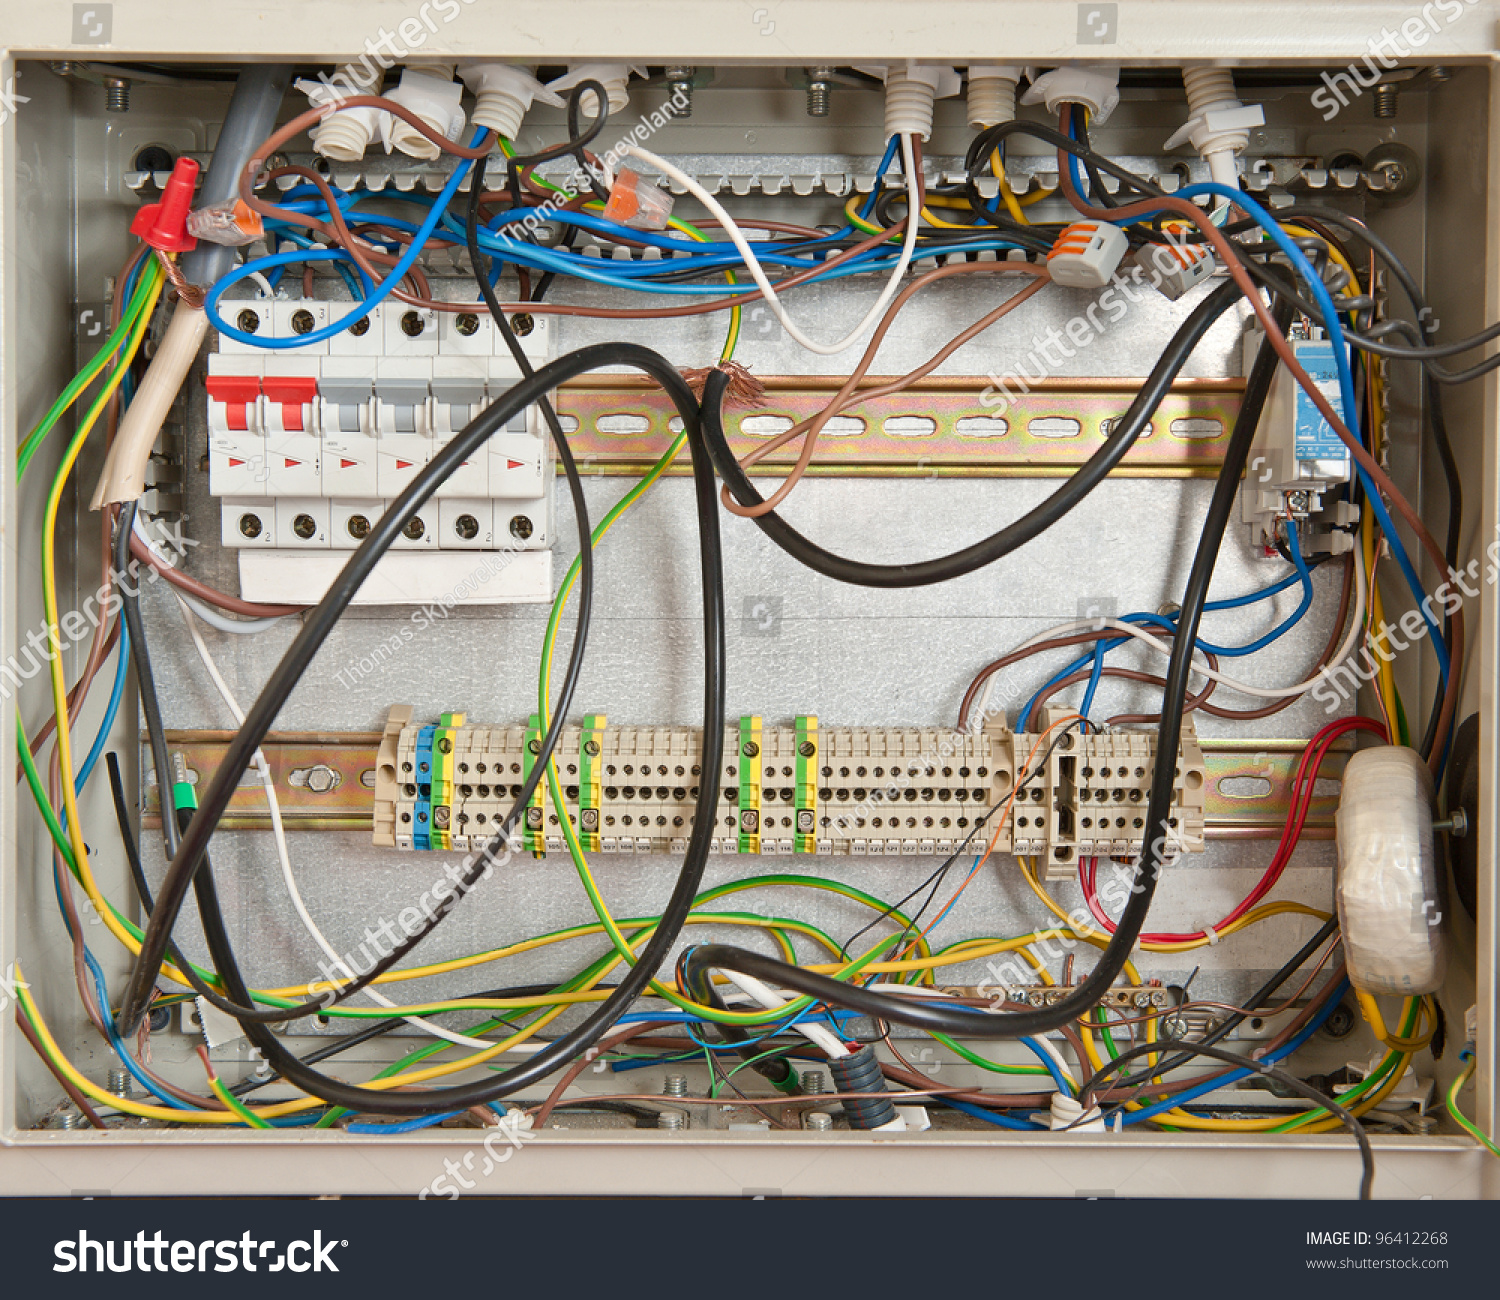 electrical connections fuse box stock photo shutterstock electrical connections in a fuse box